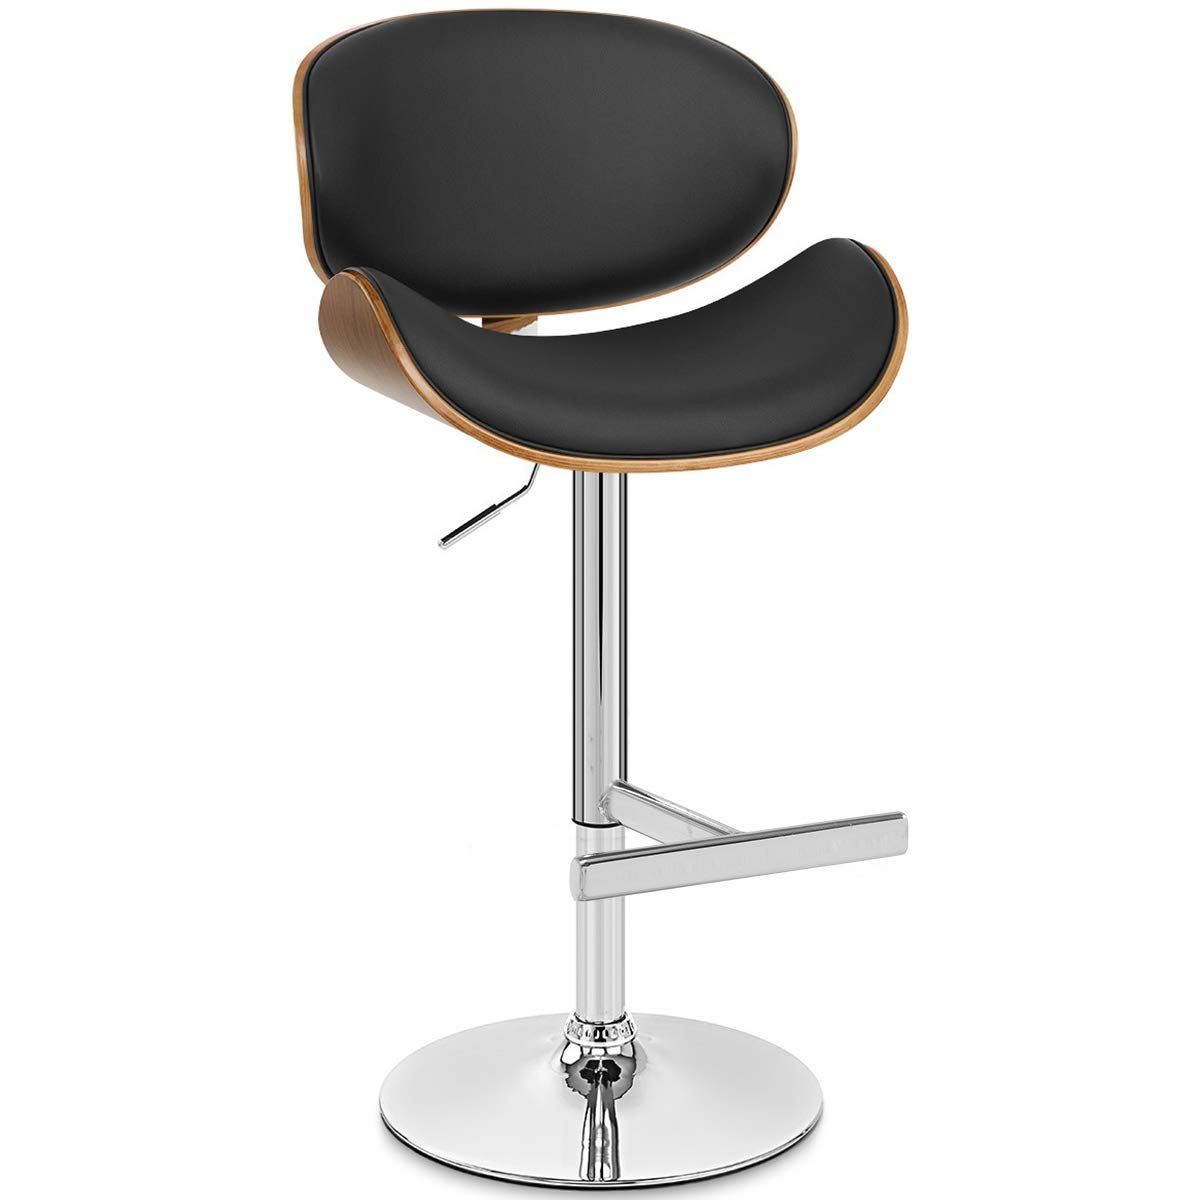 Life Carver Height Adjustable Bentwood Leather Padded Bar Stool Chair Black & Walnut Chrome Swivel Stool Restaurant Kitchen Breakfast Stool